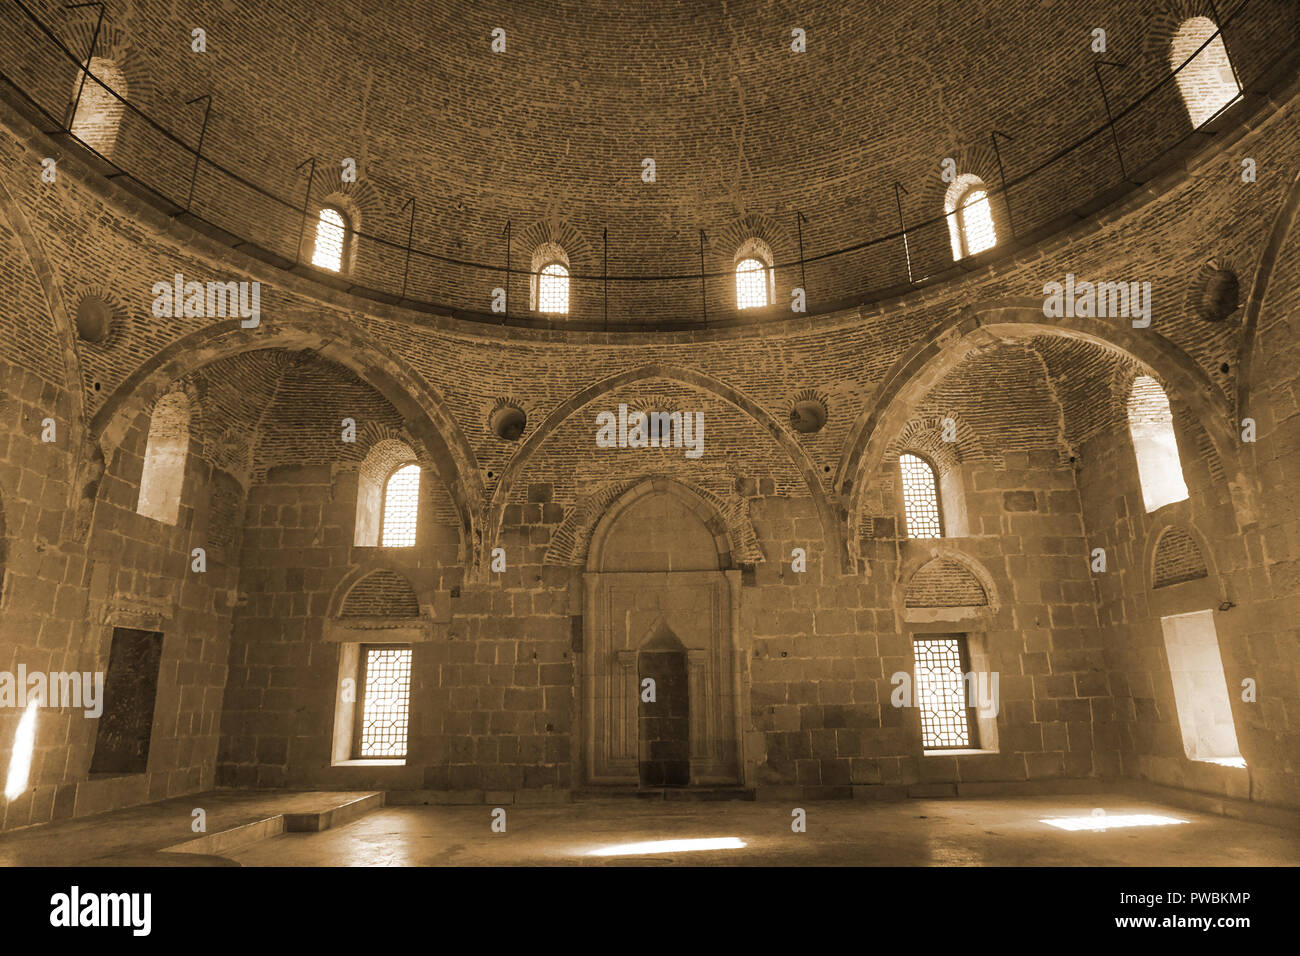 Akhaltsikhe Rabati Castle Fortress Complex Mosque Mihrab with Seipa Tone Effect - Stock Image